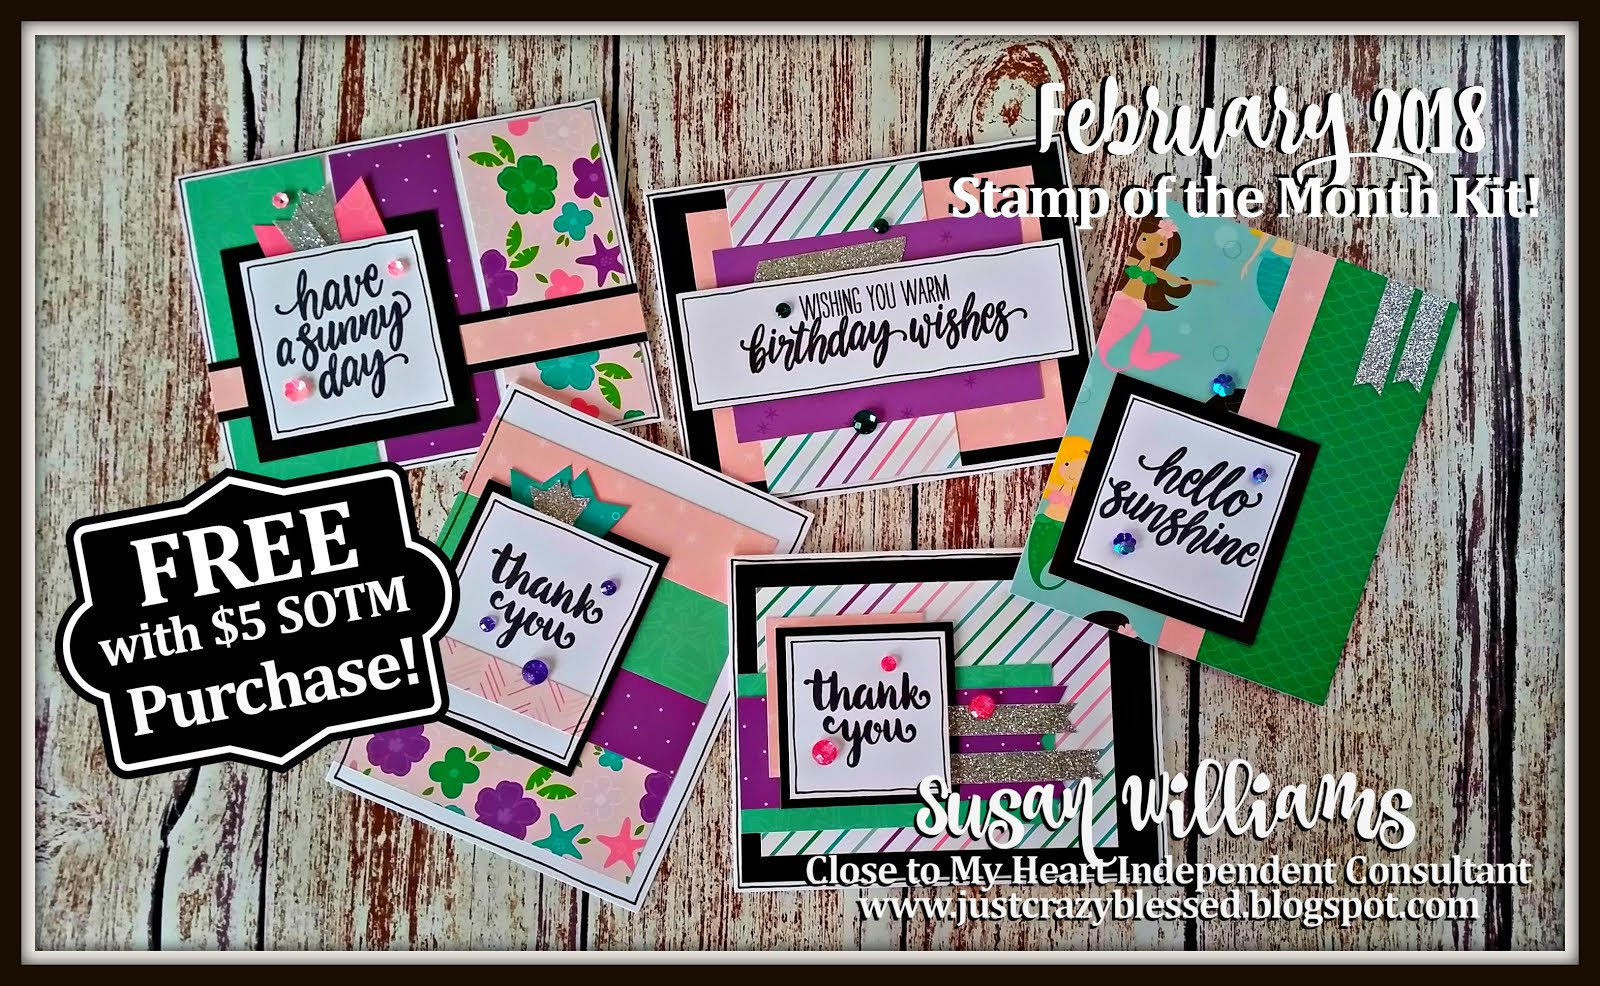 February Stamp of the Month Card Workshop!